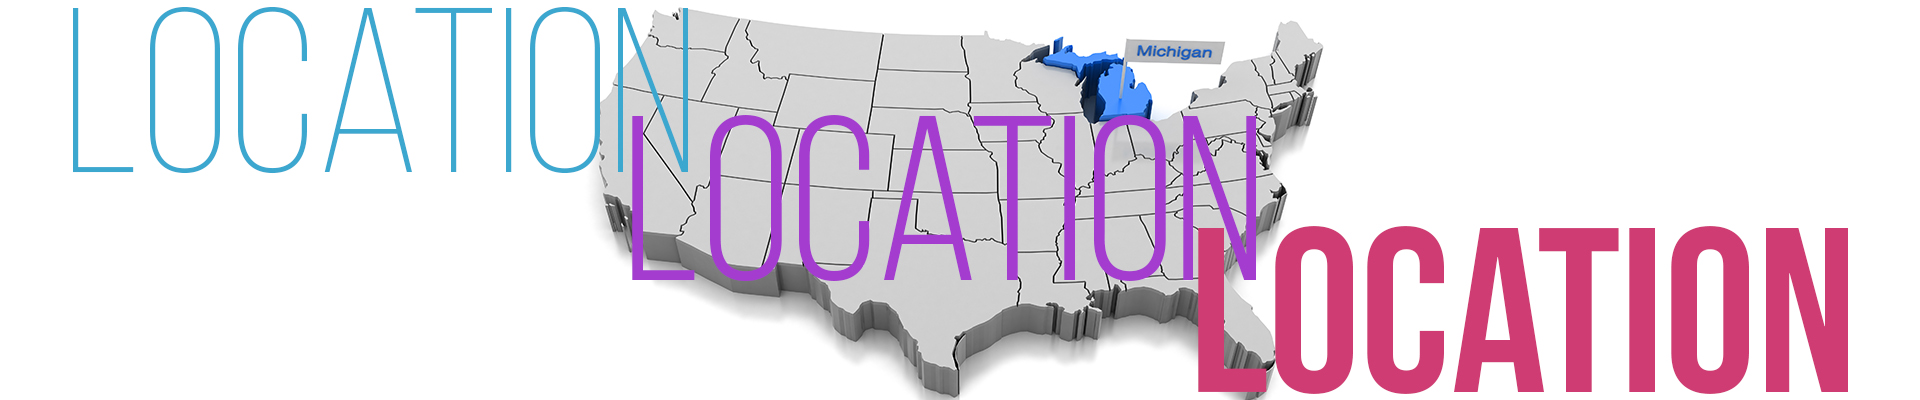 Location! Location! Location! Why location makes a difference in the cost of your RV.